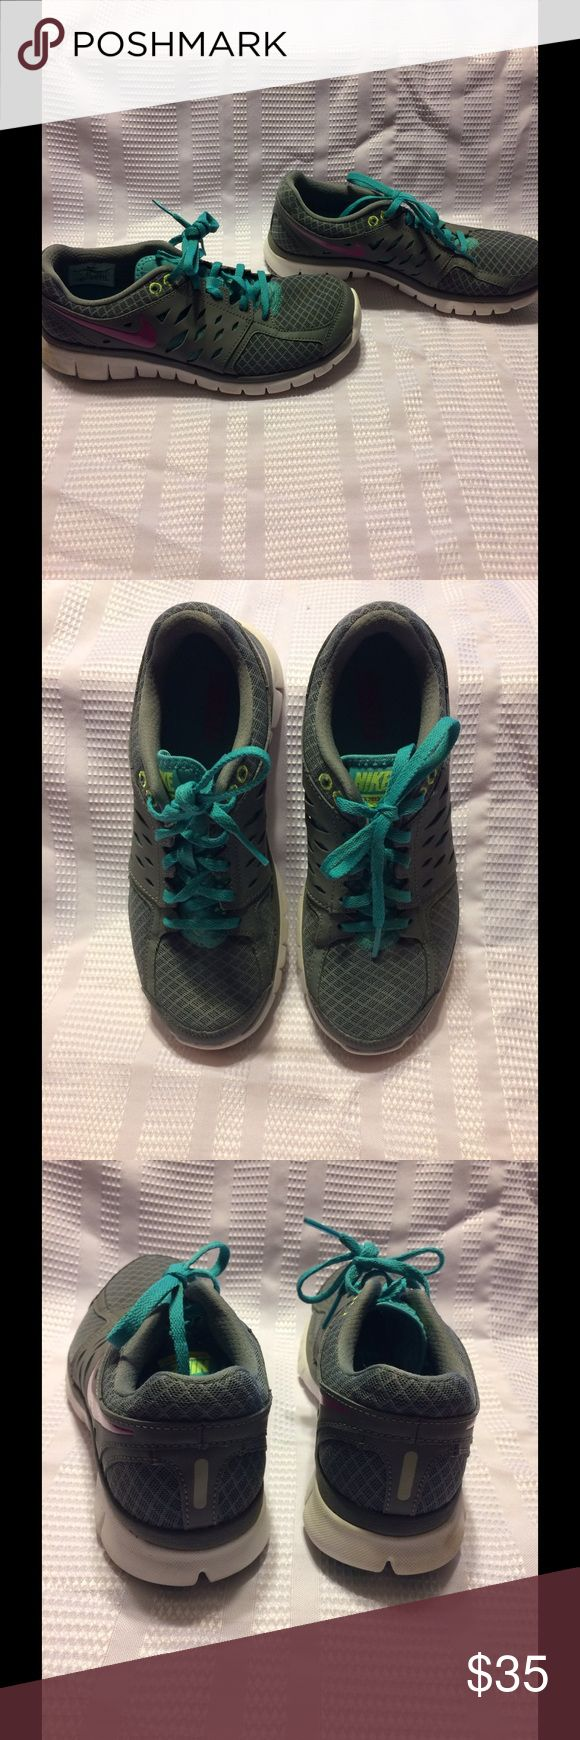 """Nike Flex Run size 7. Nike Flex Run in colors gray,aqua and pink shoes with white soles in excellent condition only worn twice to the gym before my daughter decided that was not what she wanted to do """"KIDS"""" her loss can be your gain these are in excellent to new condition. Nike Shoes Athletic Shoes"""